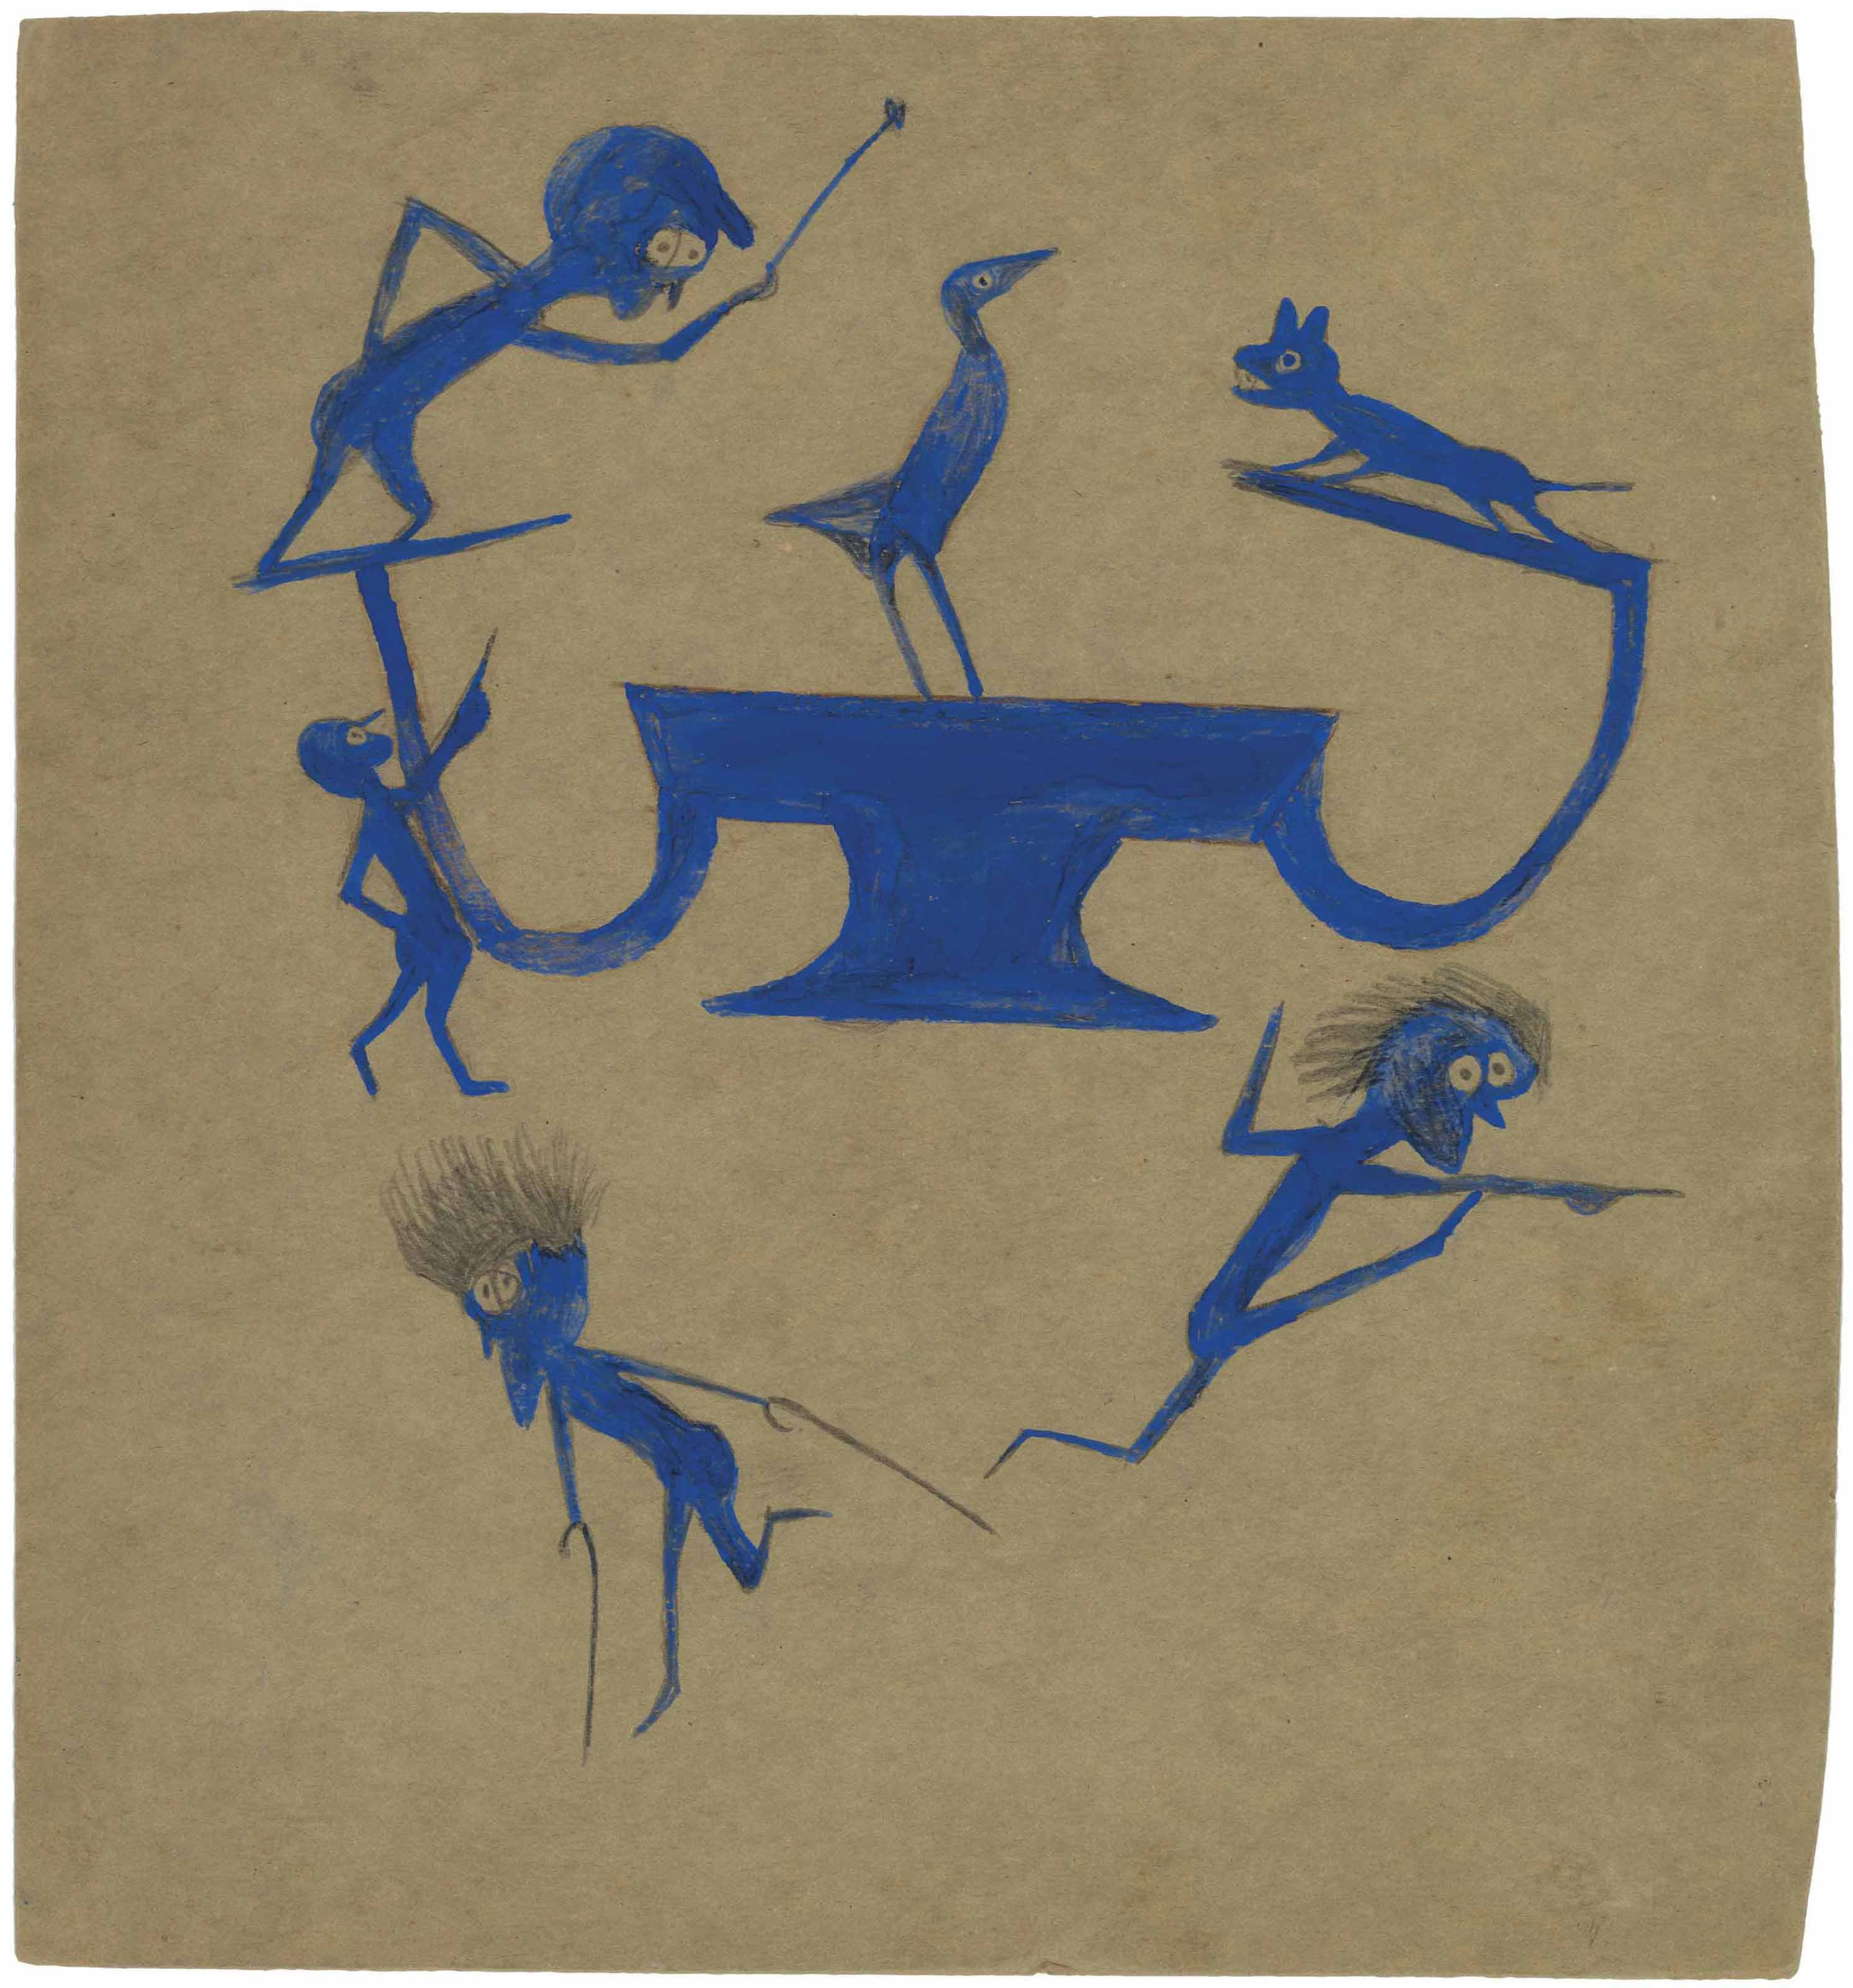 Exciting Event in Blue: Four Wild Men, Barking Dog, Perched Bird and Construction, 1939-1942